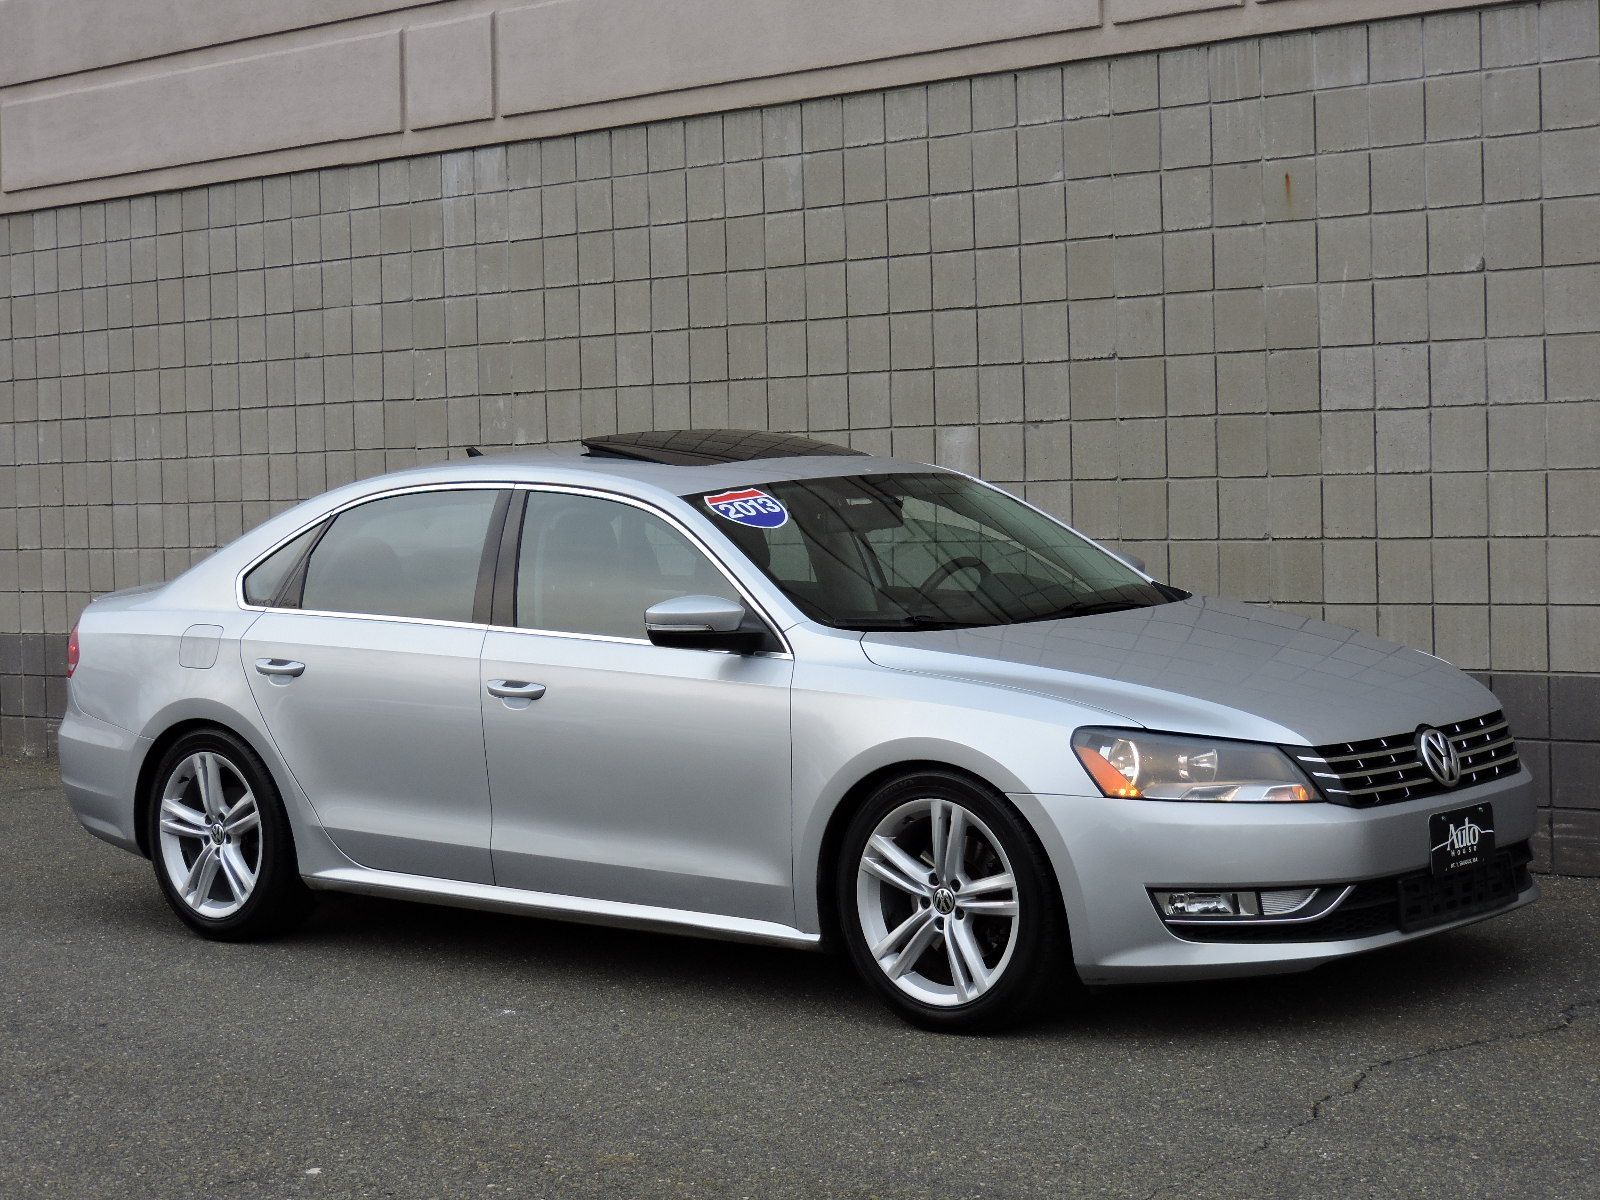 used 2013 volkswagen passat se wsunroof nav at auto house usa saugus. Black Bedroom Furniture Sets. Home Design Ideas